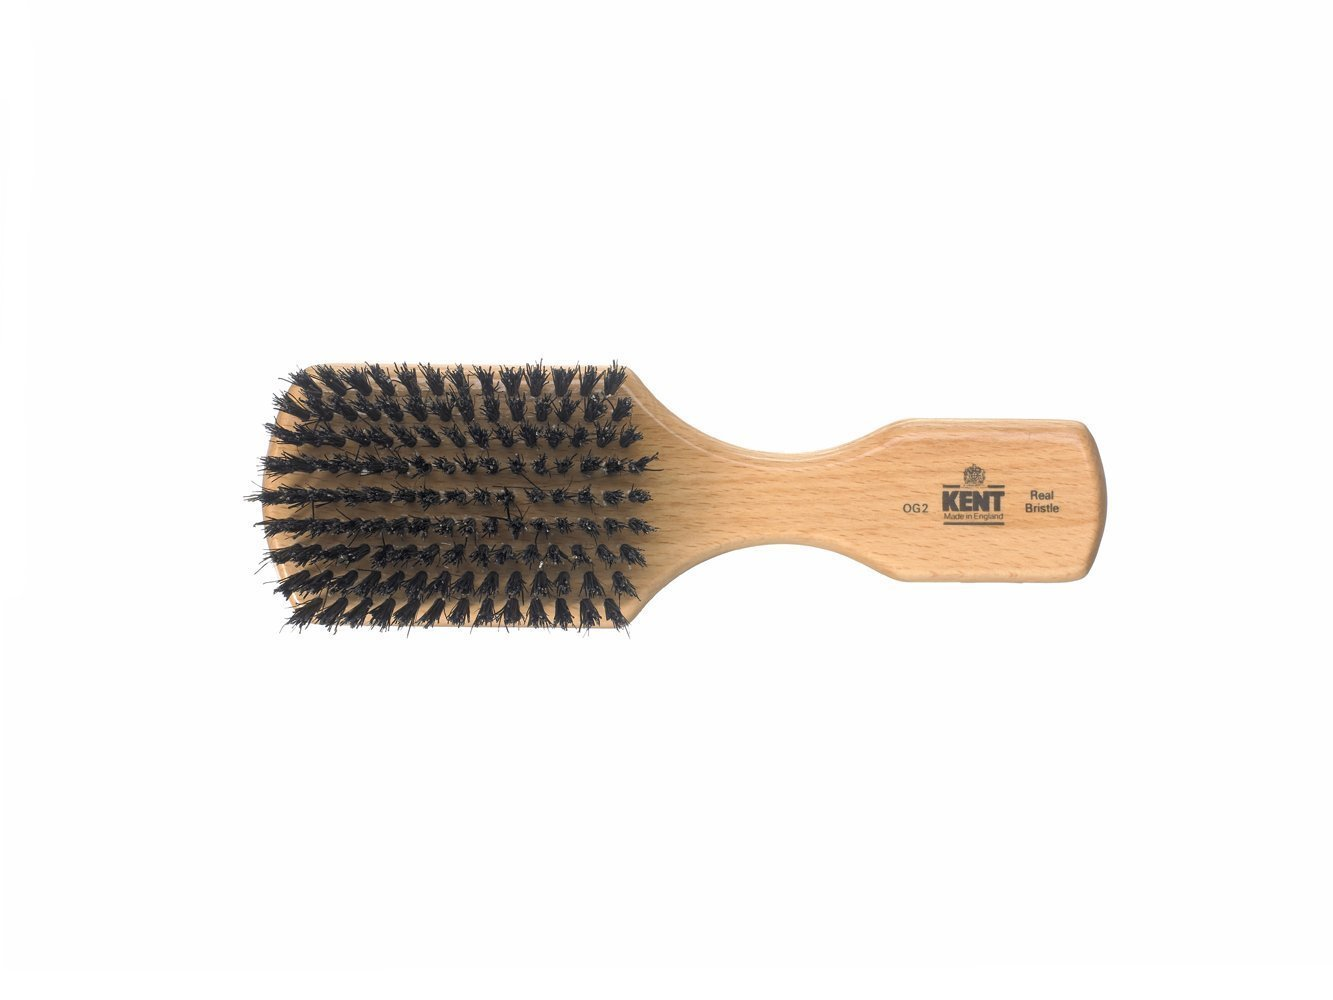 Kent Rectangular Black Bristle Beechwood Hairbrush - OG2